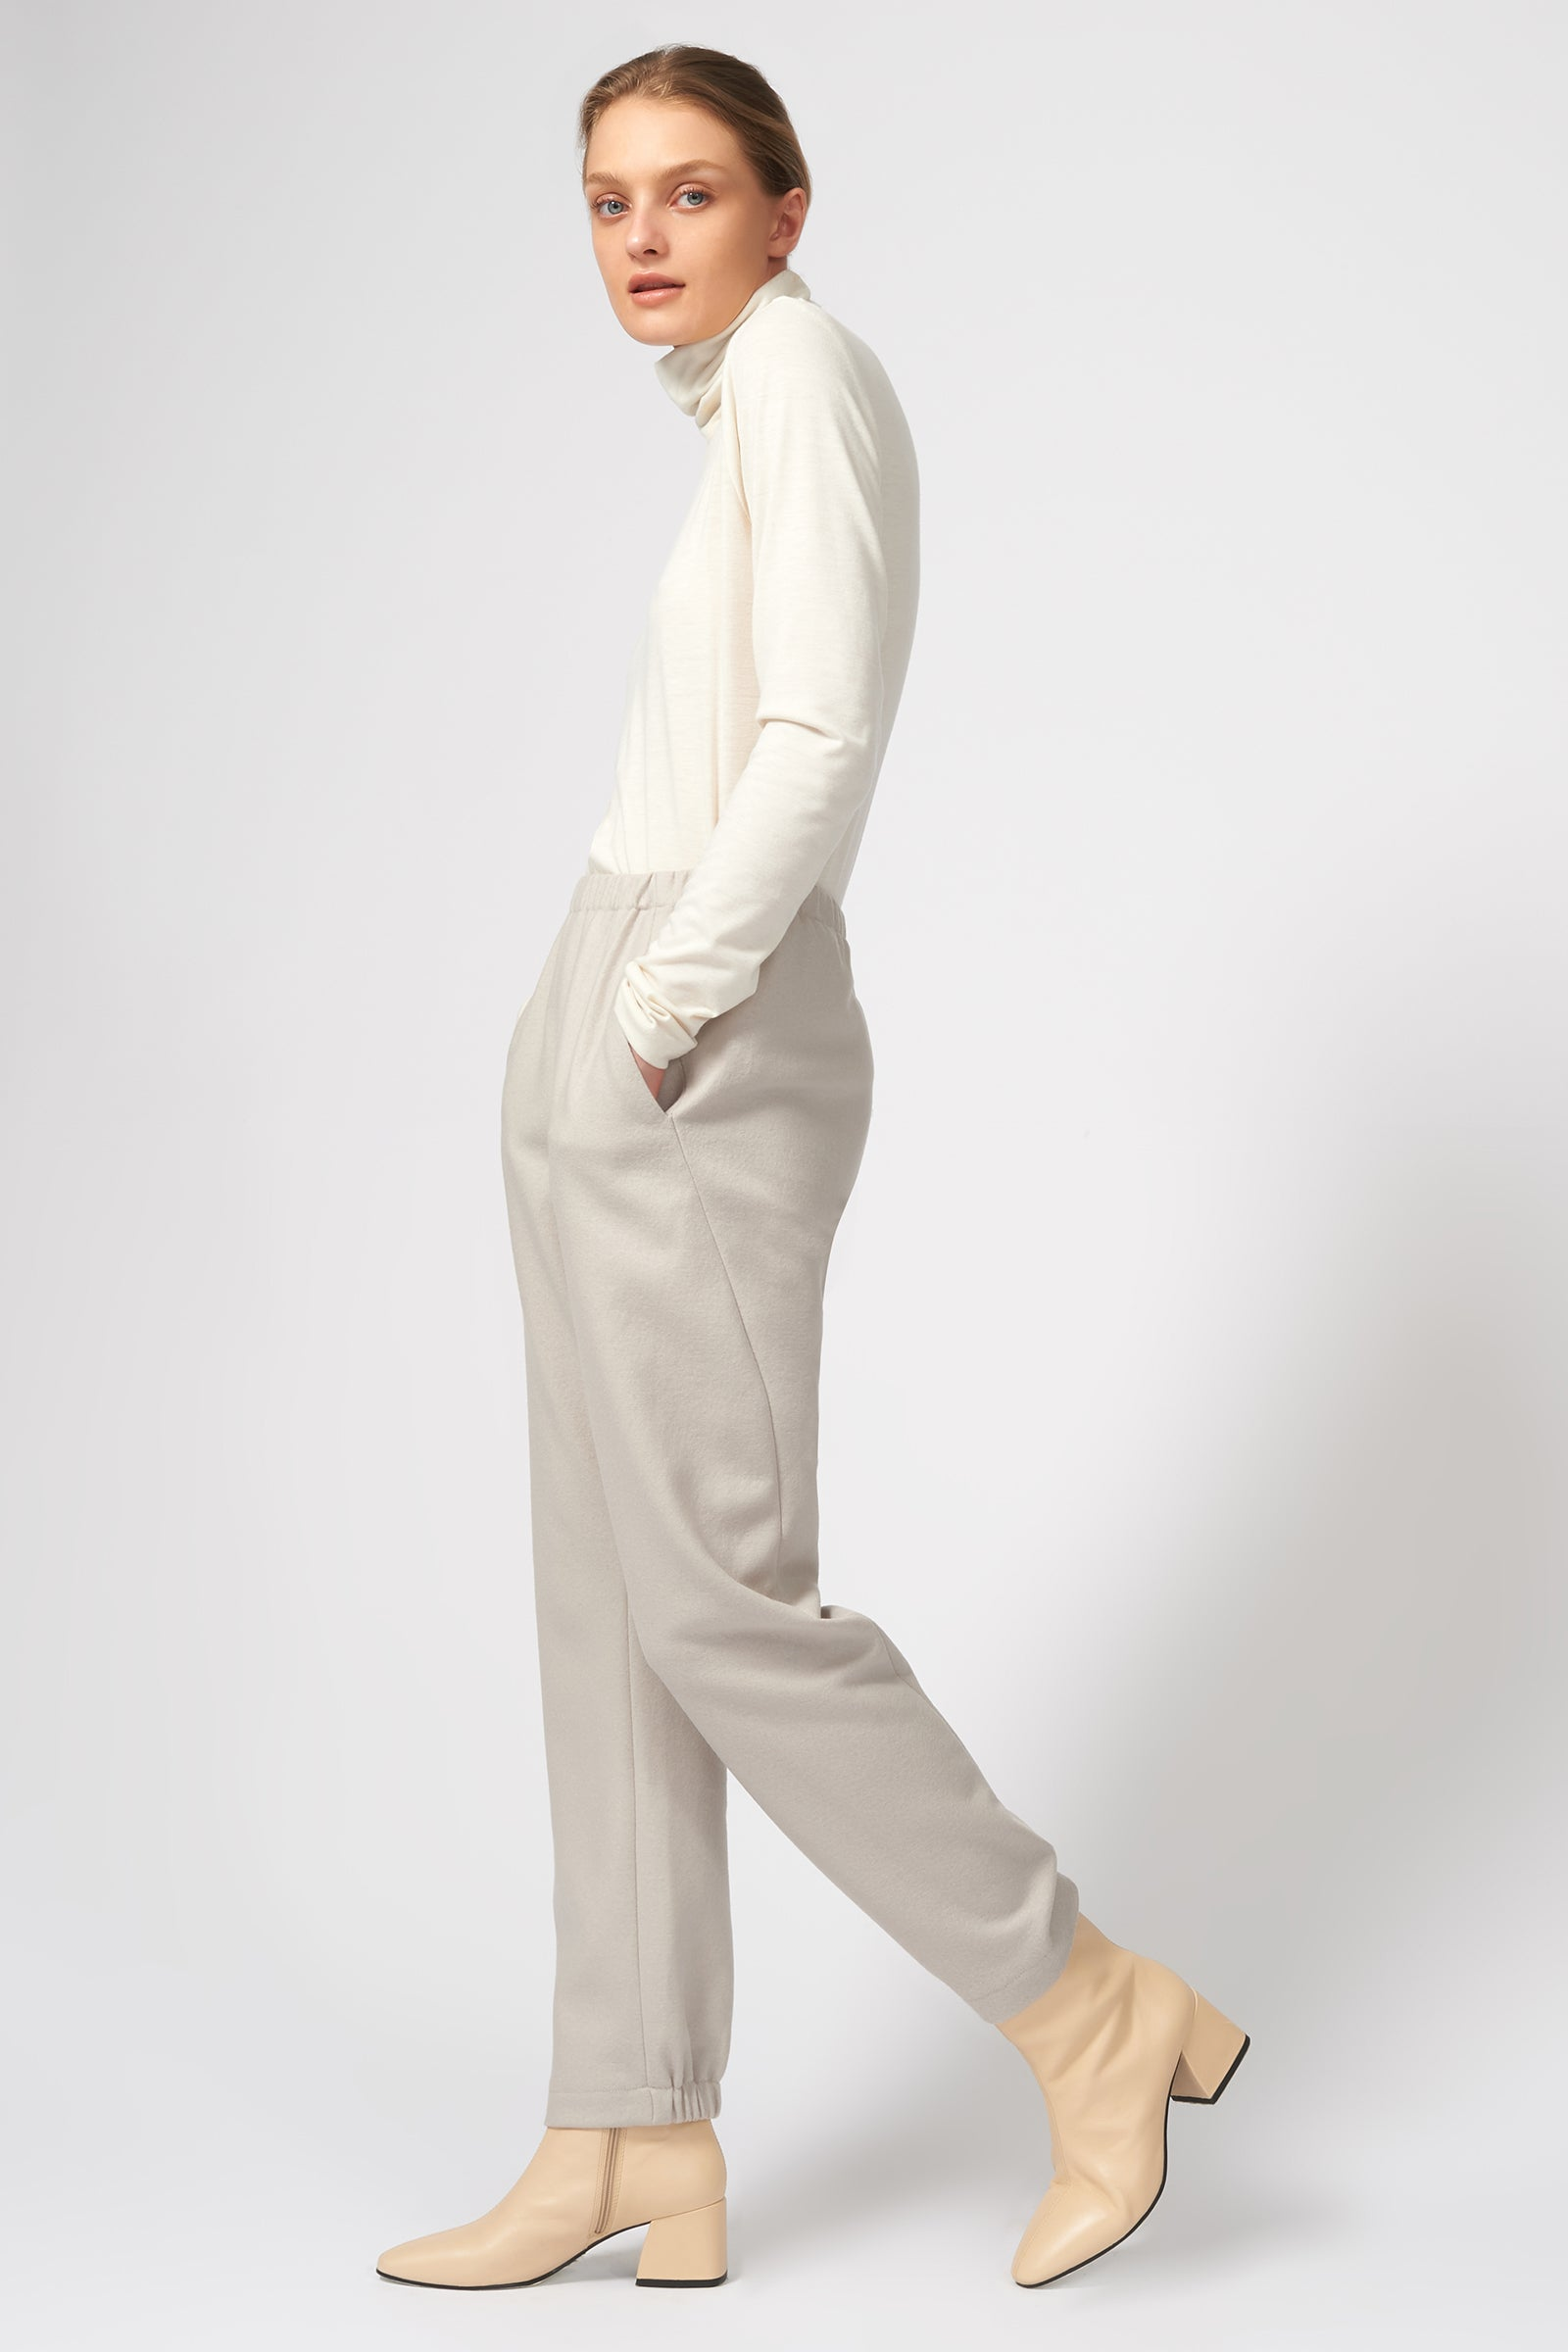 Kal Rieman Felted Jersey Angle Seam Jogger in Mink on Model Full Side View